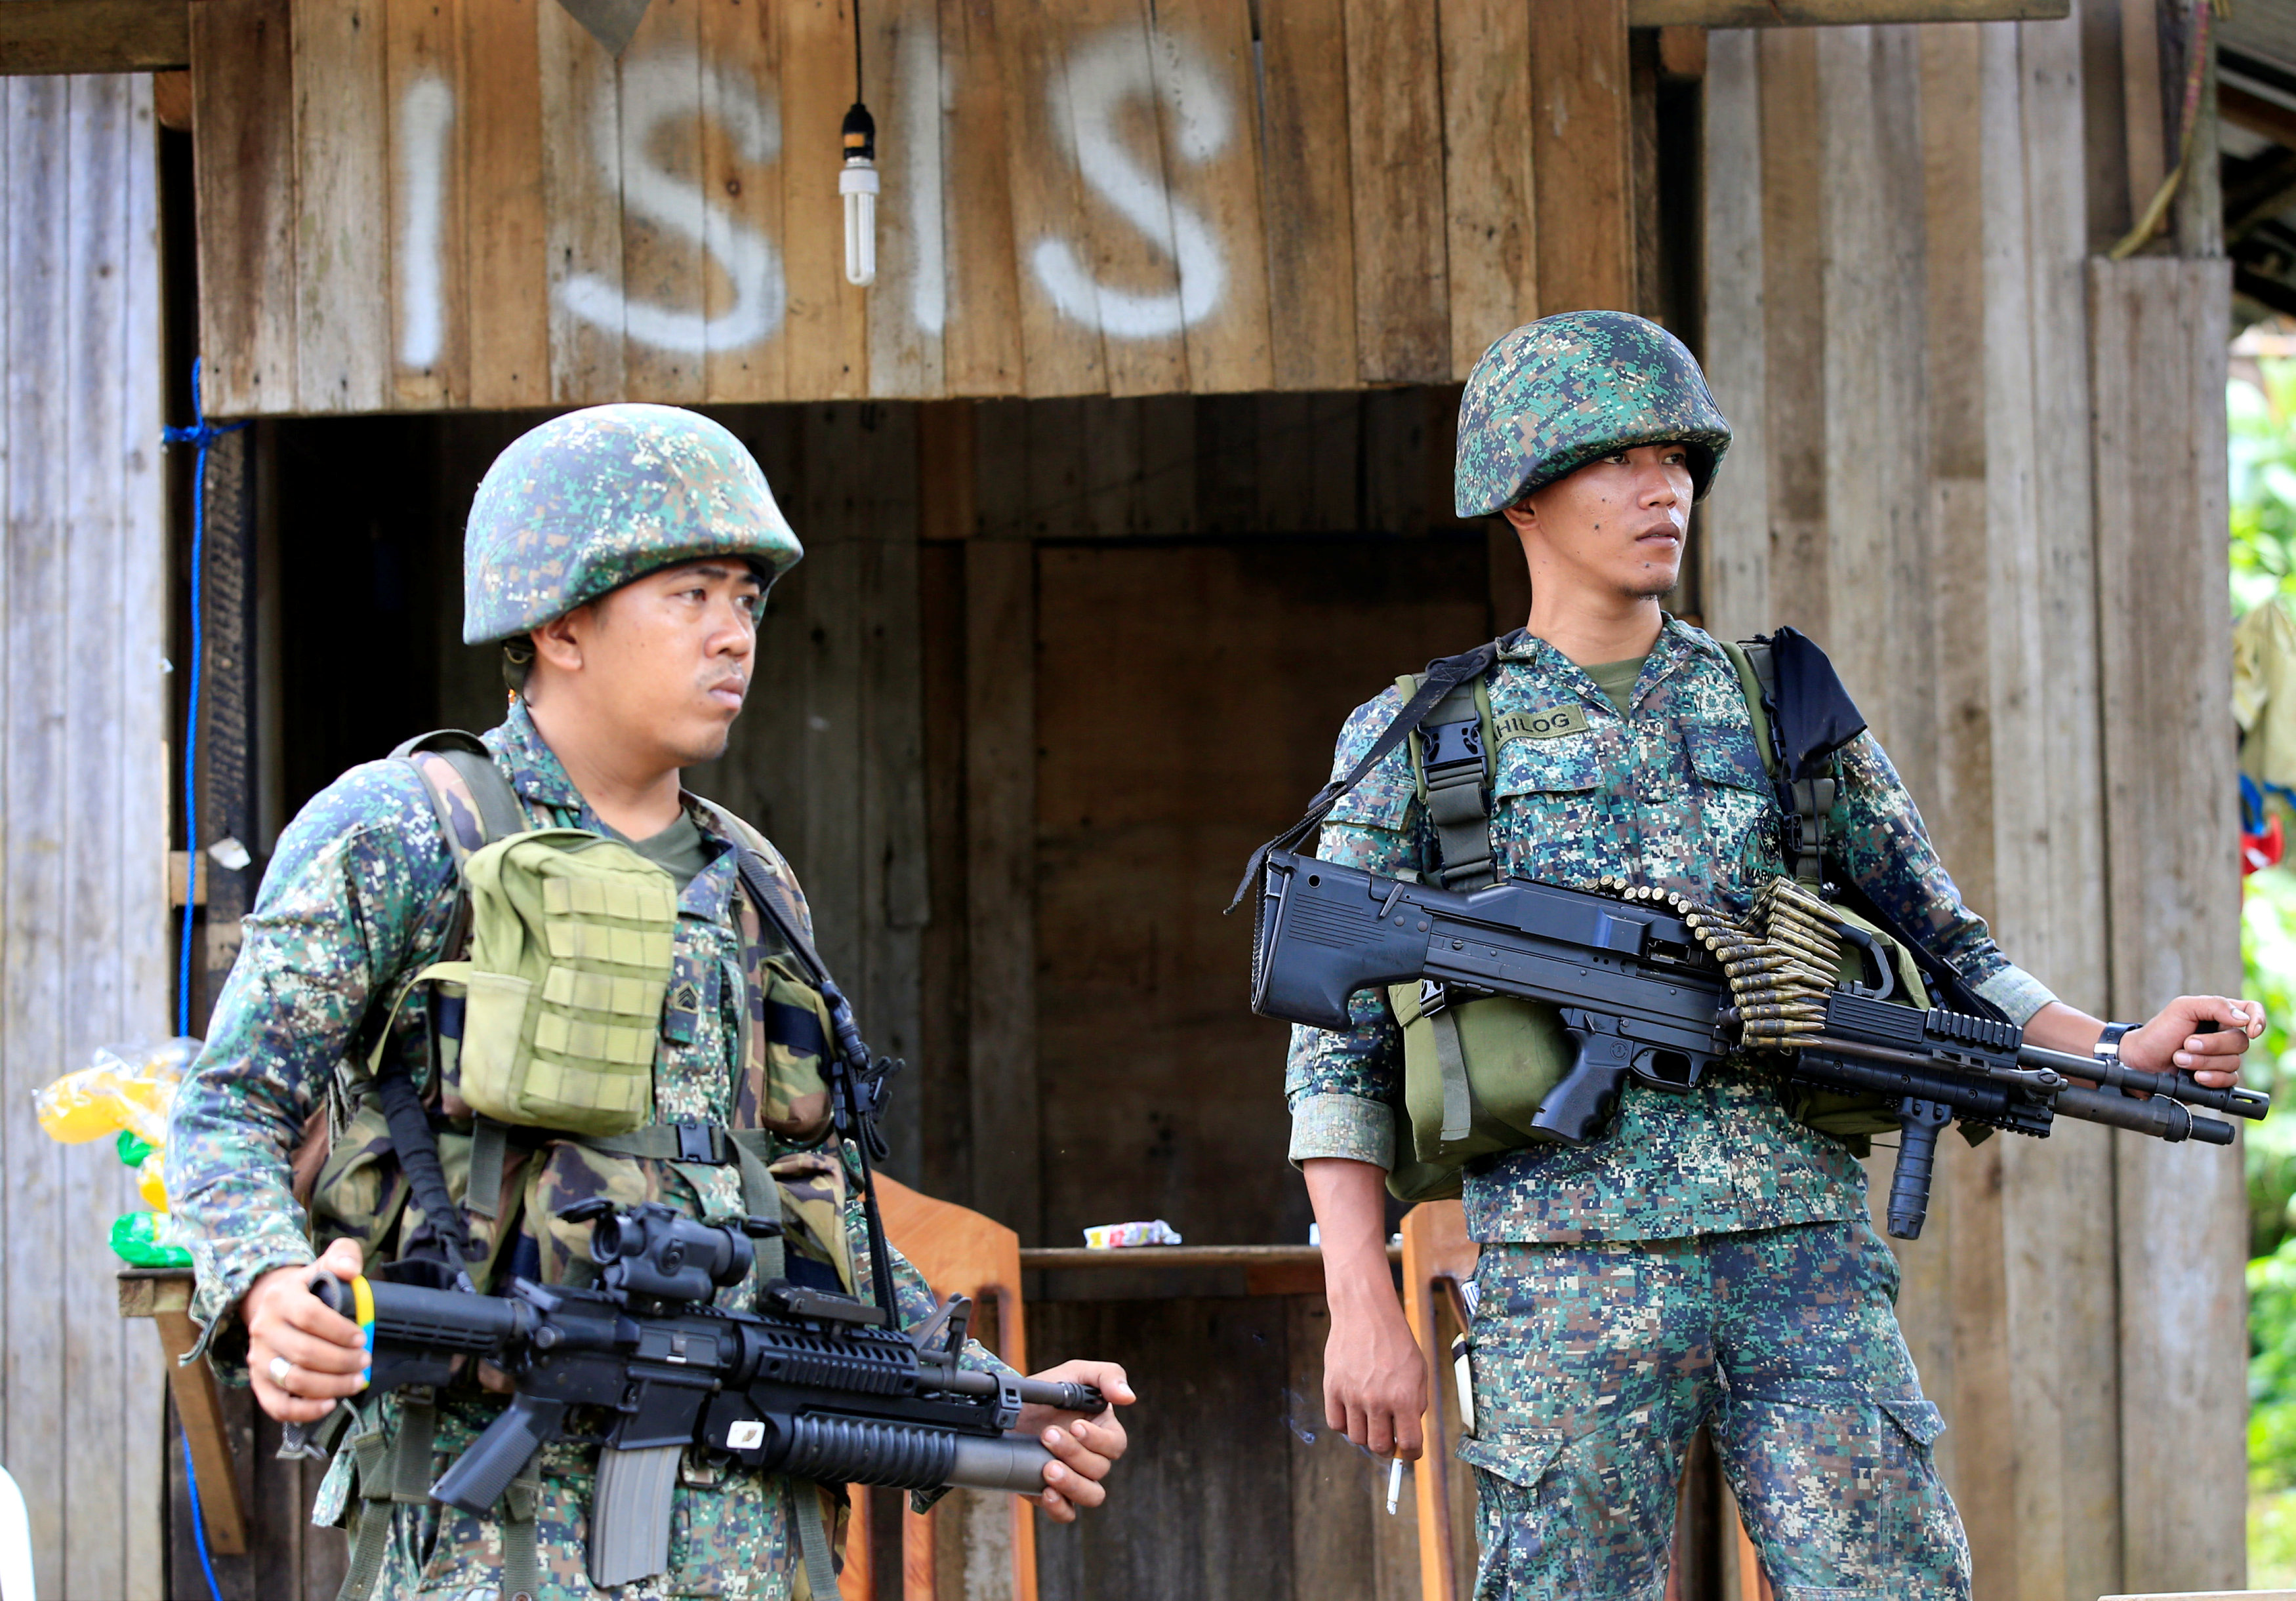 Philippines Army Captures Commander Of ISIS-Affiliated Abu Sayyaf Militant Group